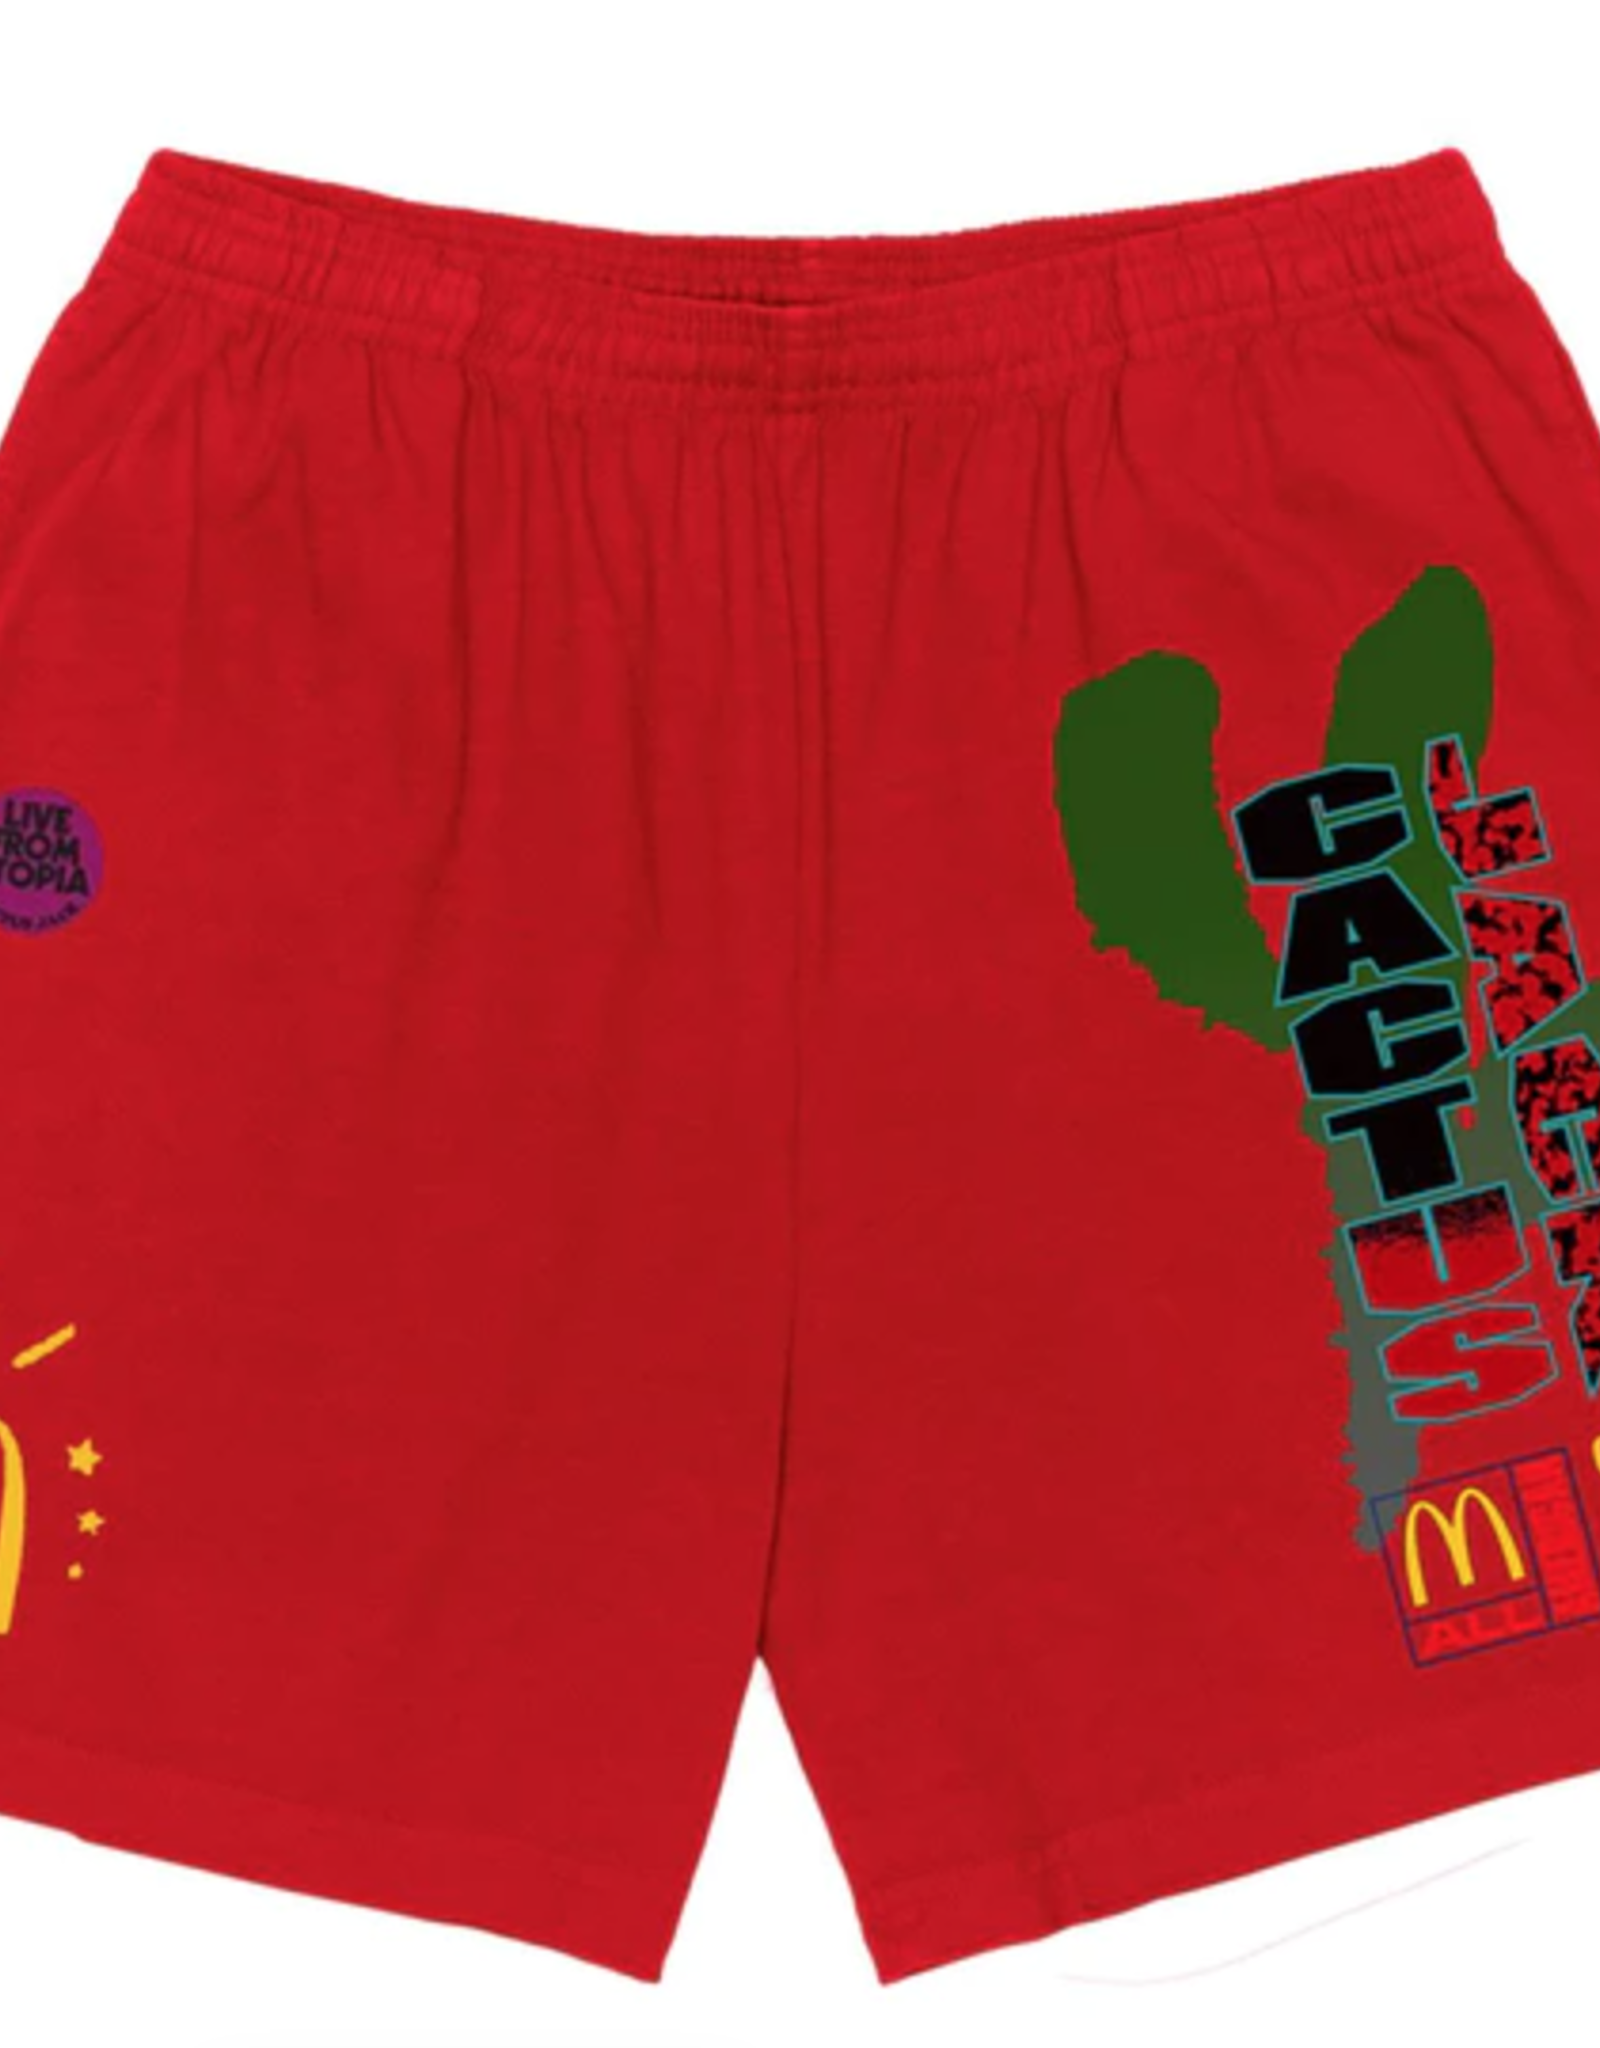 Travis Scott x McDonald's All American '92 Shorts Red